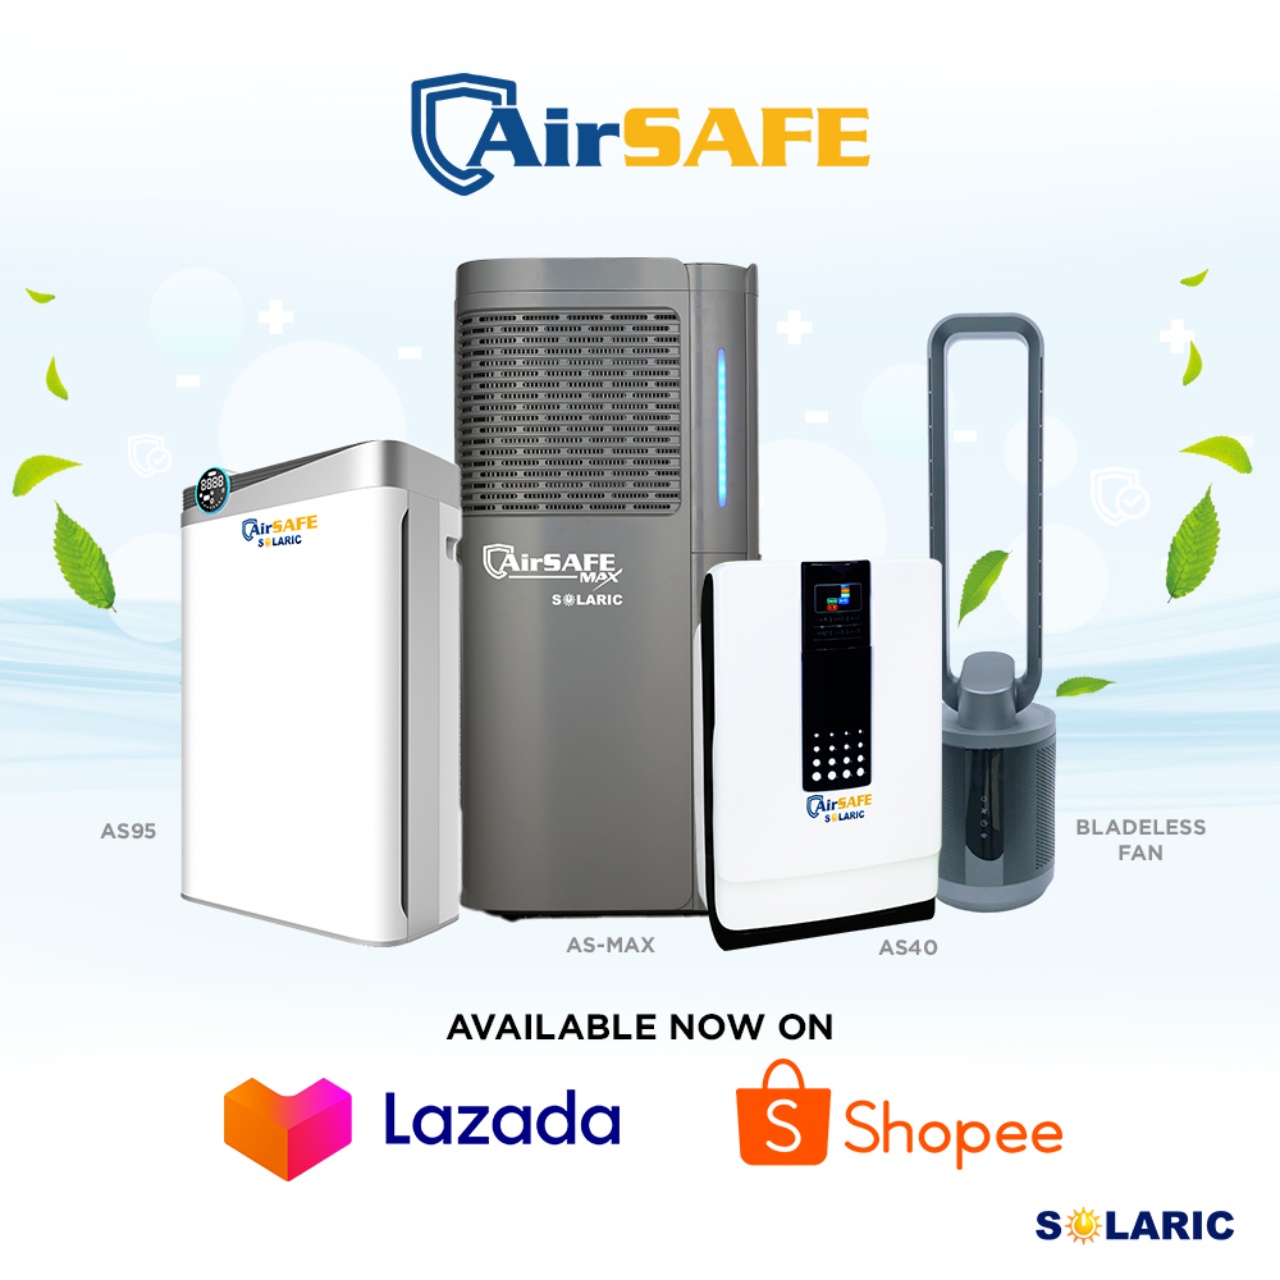 Solaric tip: Enjoy AirSAFE in lowest prices on our sale!